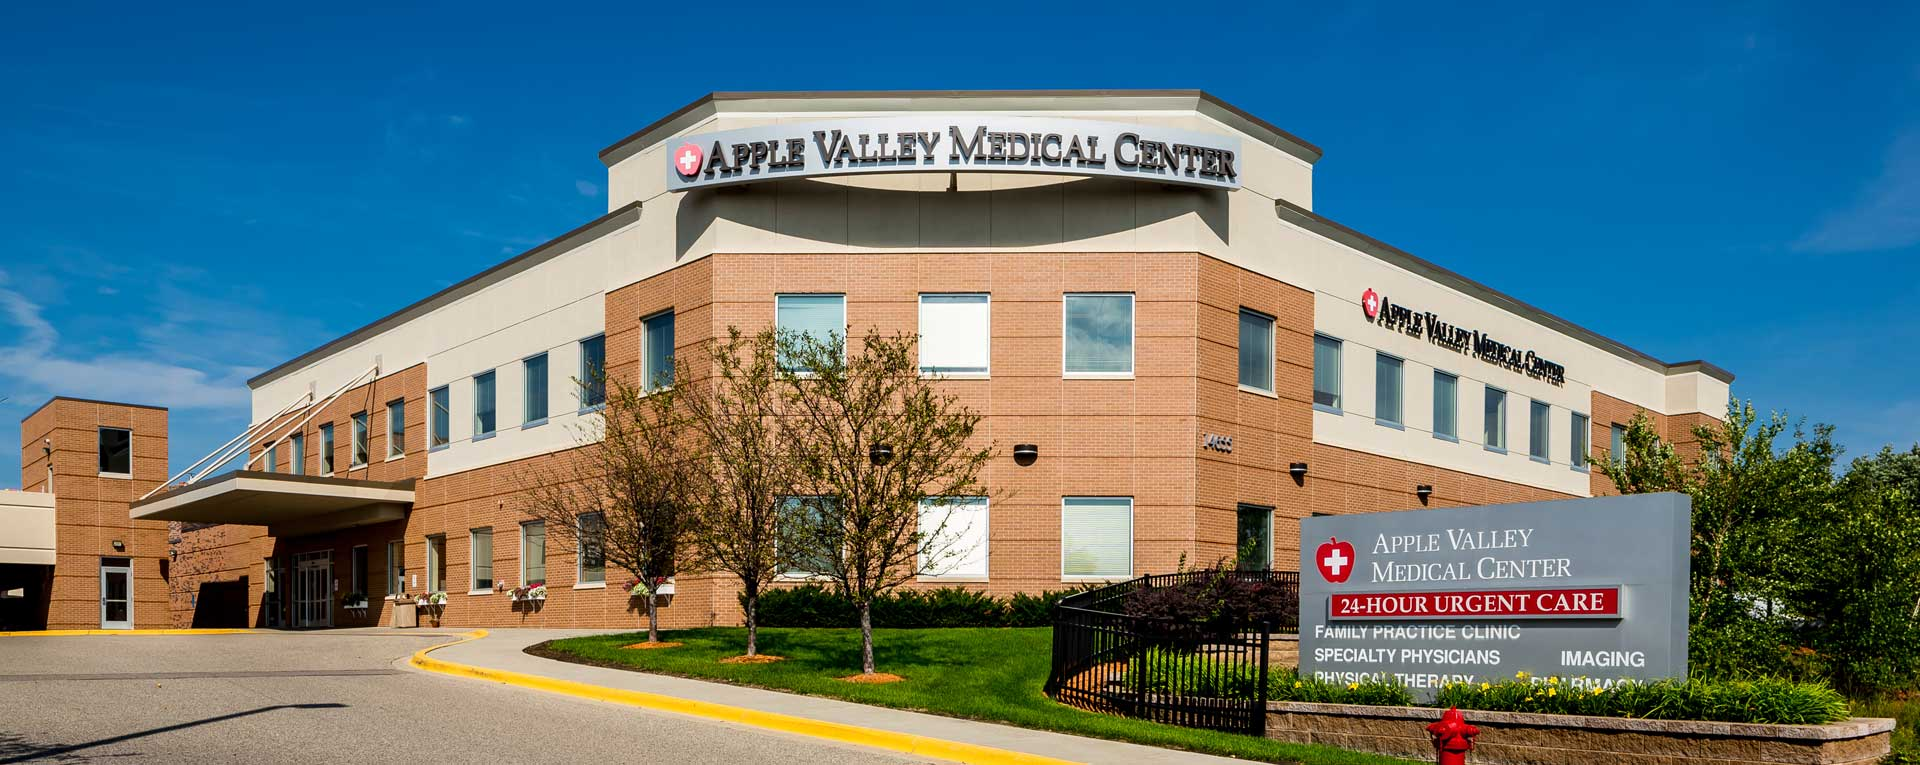 Apple Valley Mn Property Management